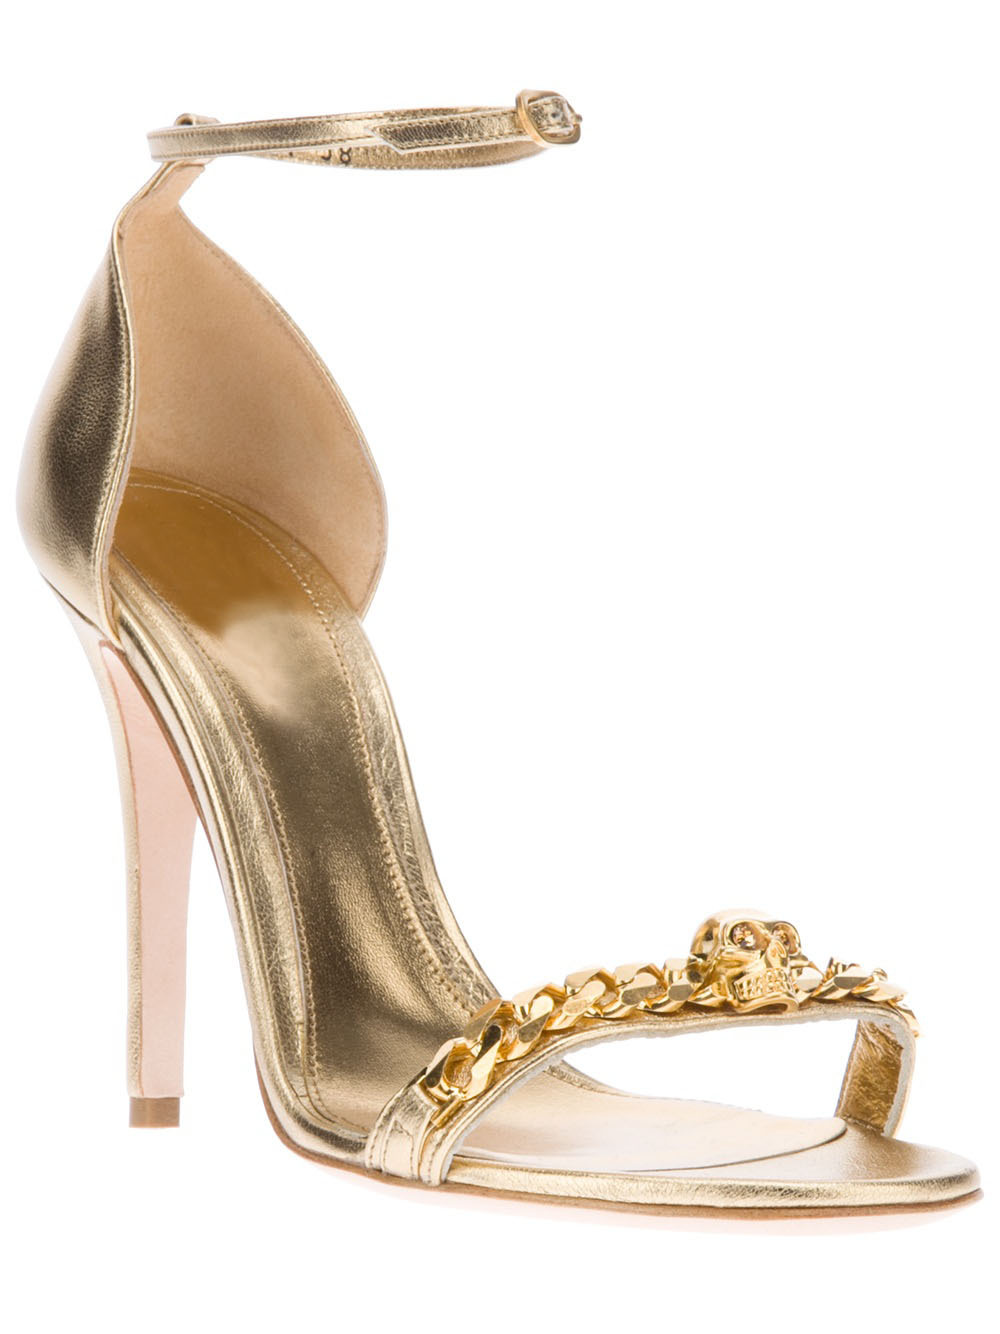 Compare Prices on Cheap Gold Shoes- Online Shopping/Buy Low Price